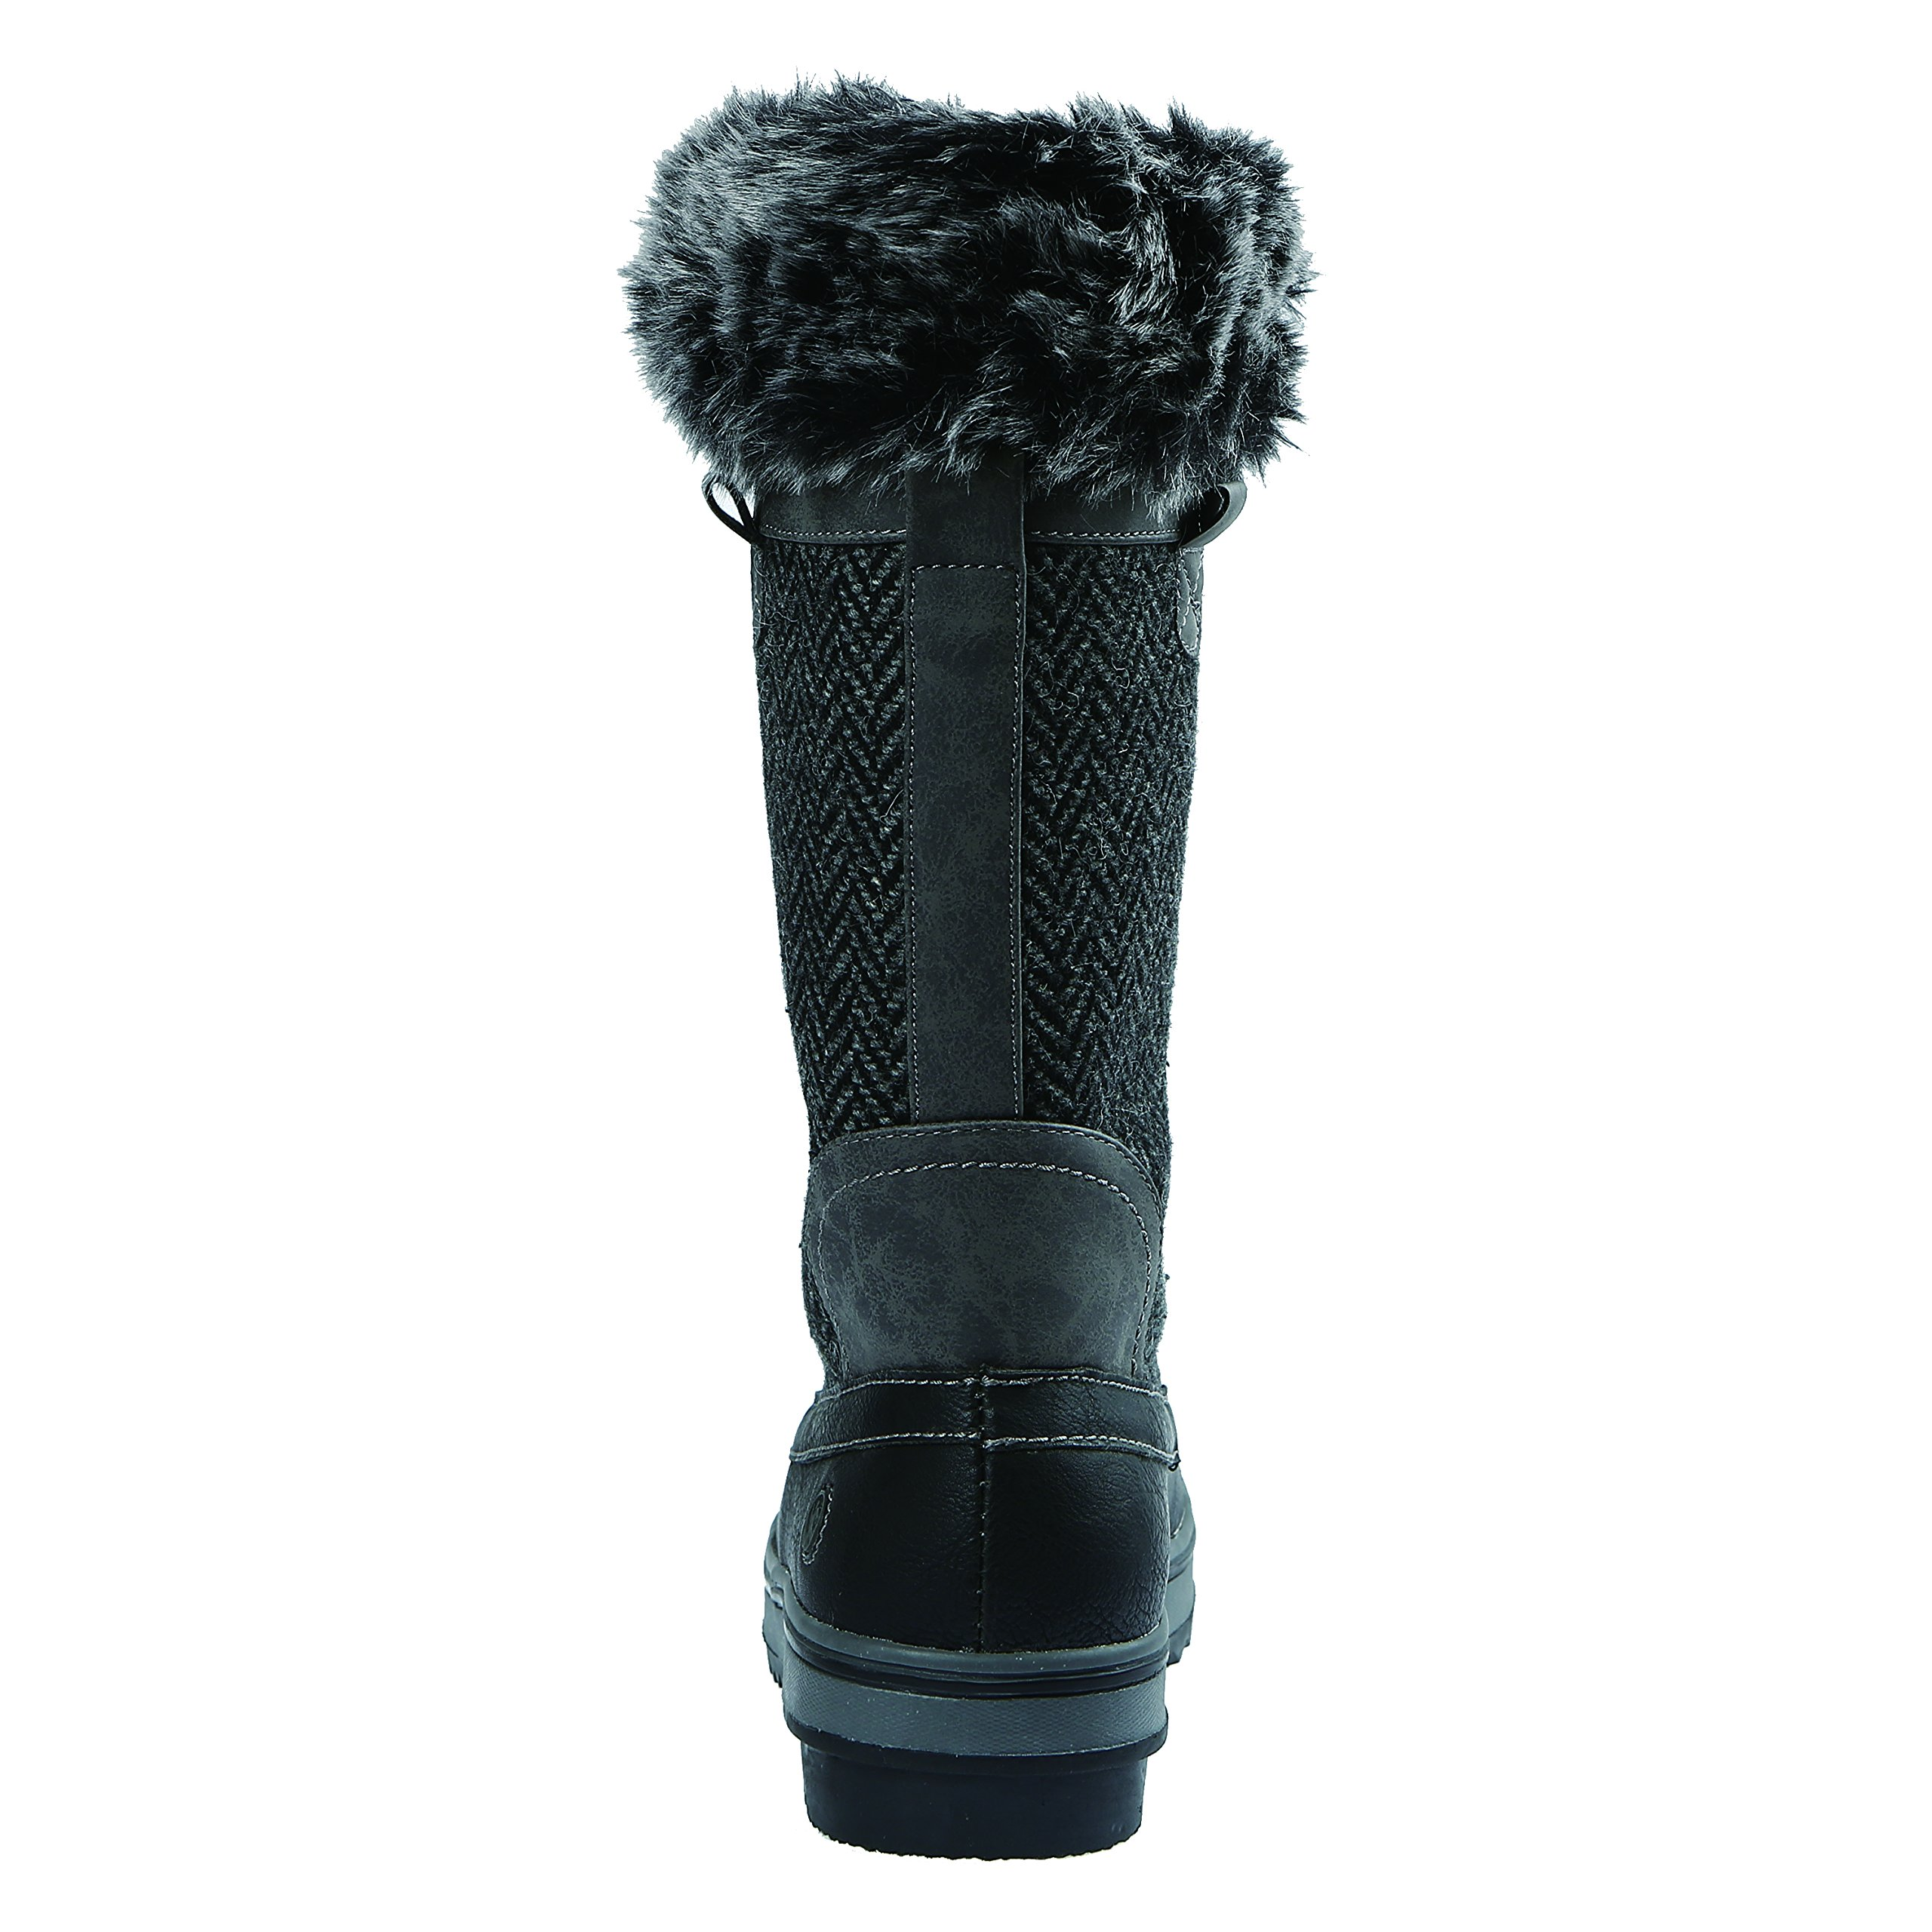 Northside Women's Bishop Snow Boot, Charcoal, 10 M US by Northside (Image #4)